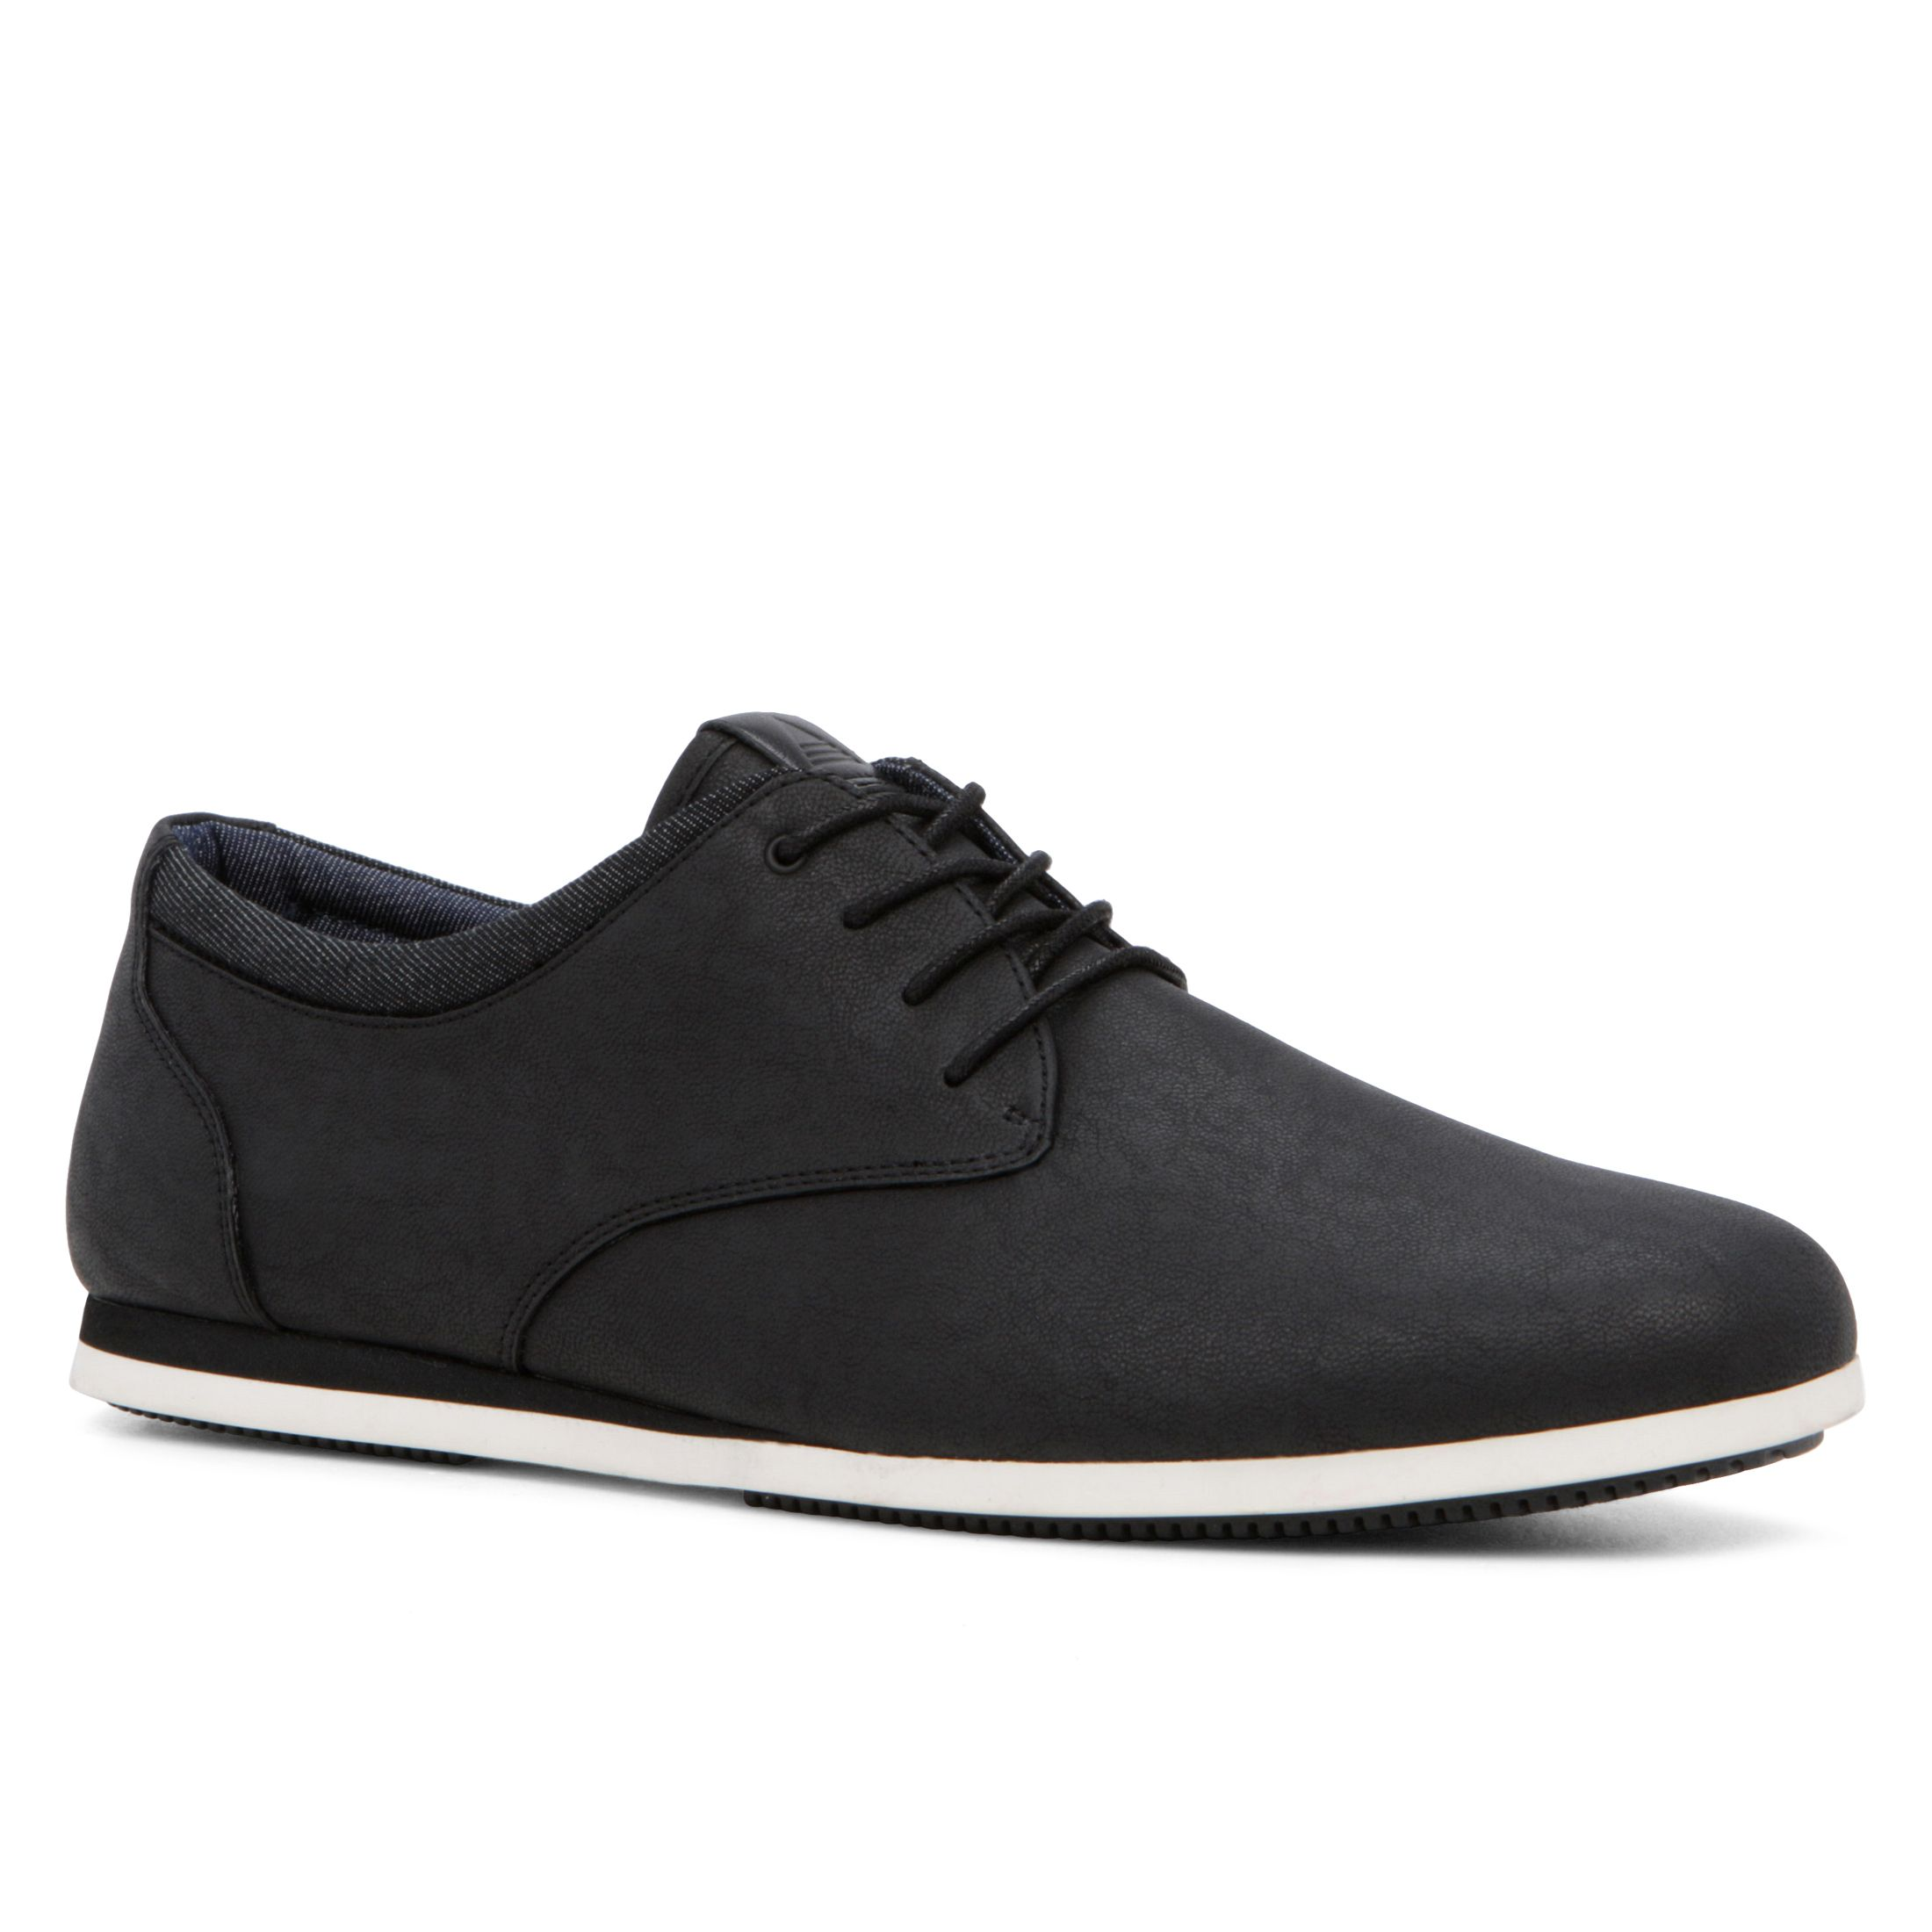 ARMANTI - Trainers - black Order Cheap Online New Online 100% Original For Sale Discount Excellent Buy Cheap Online Xh6Gy7q3